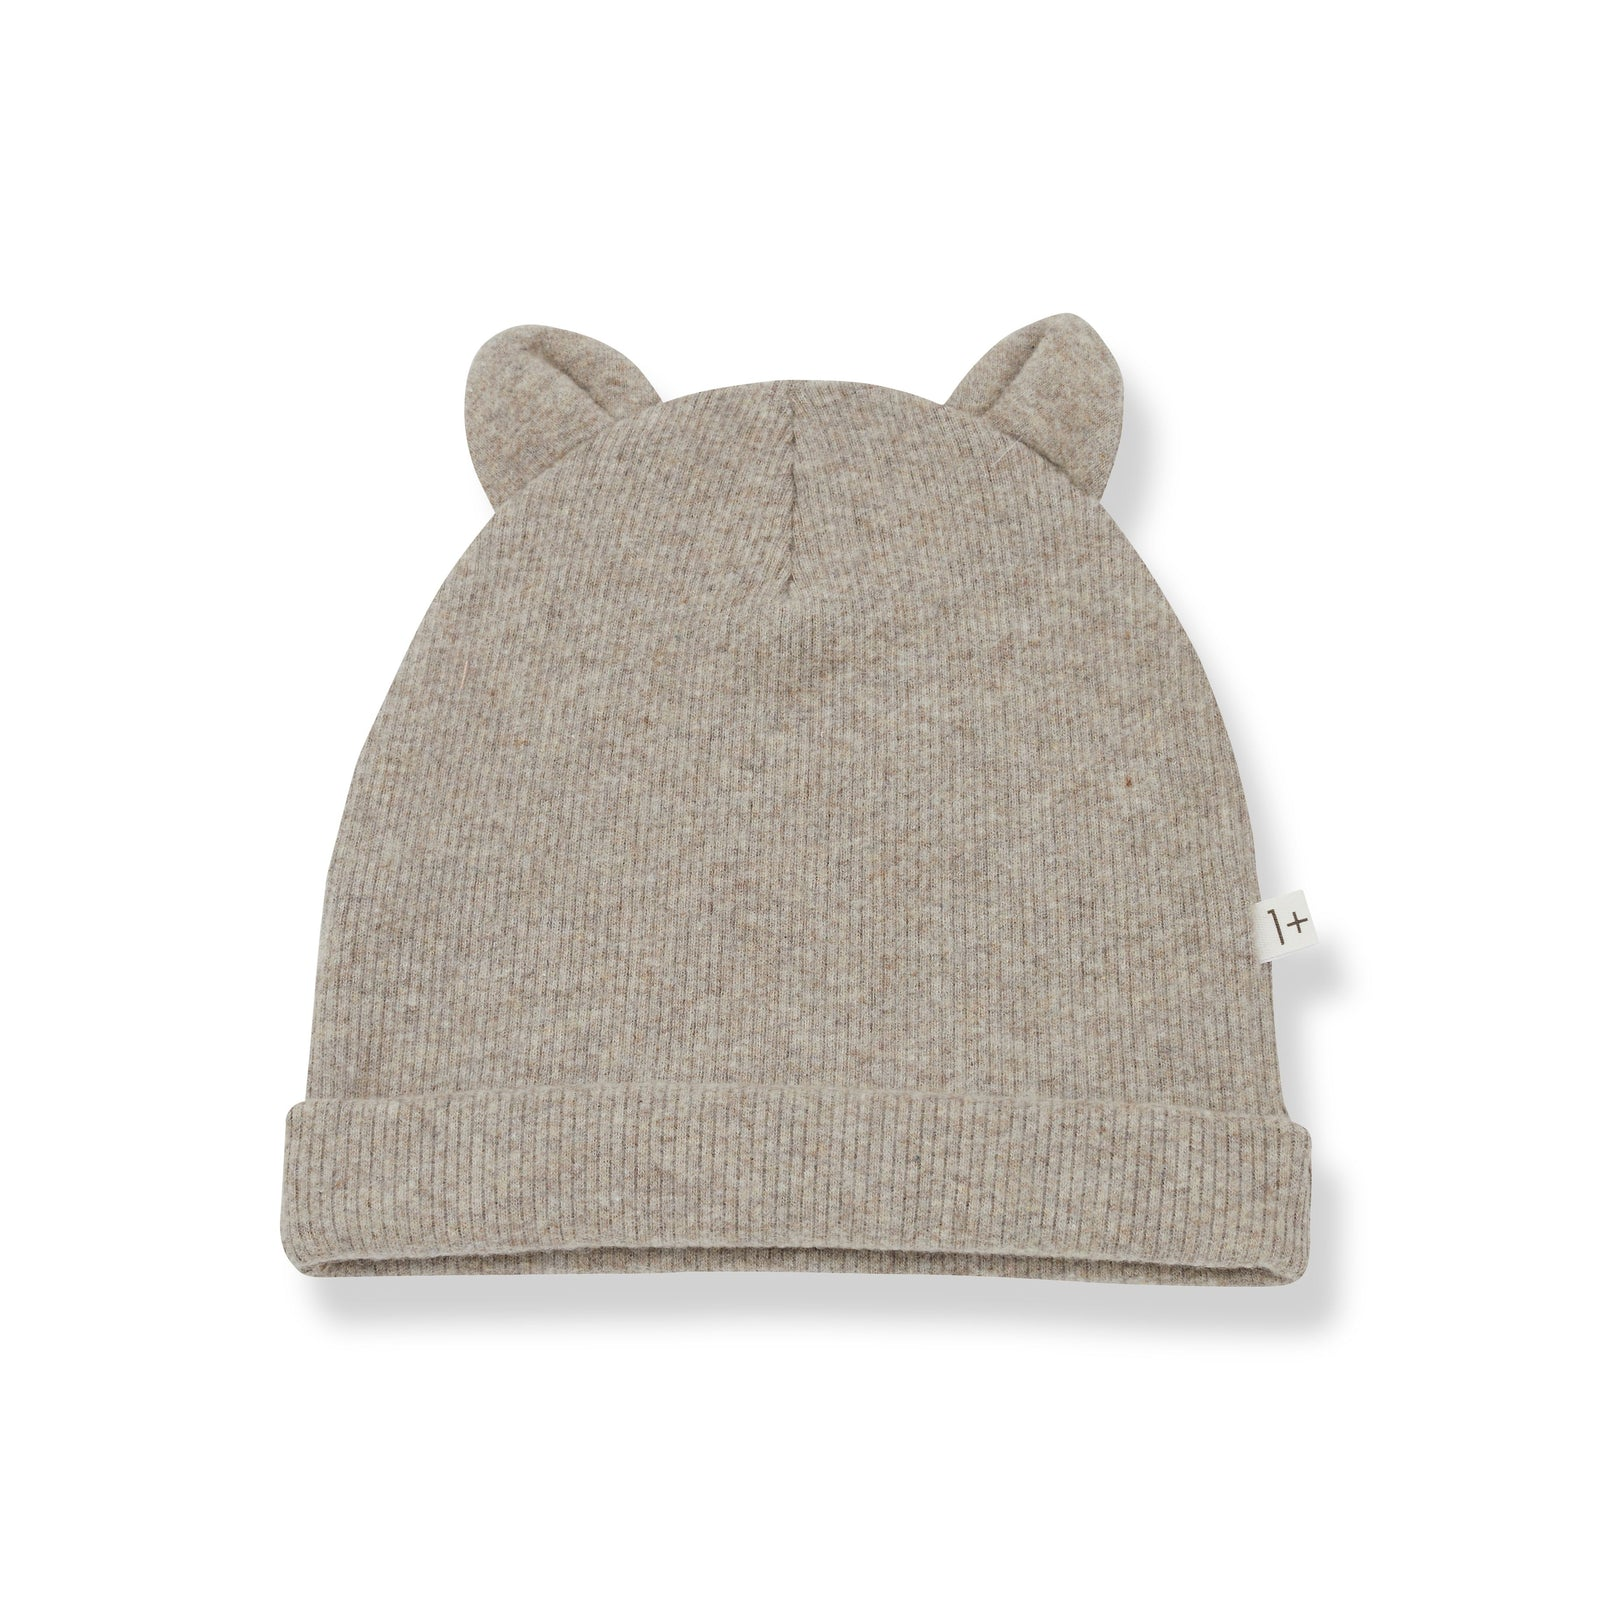 Mull Beanie with Ears - Beige